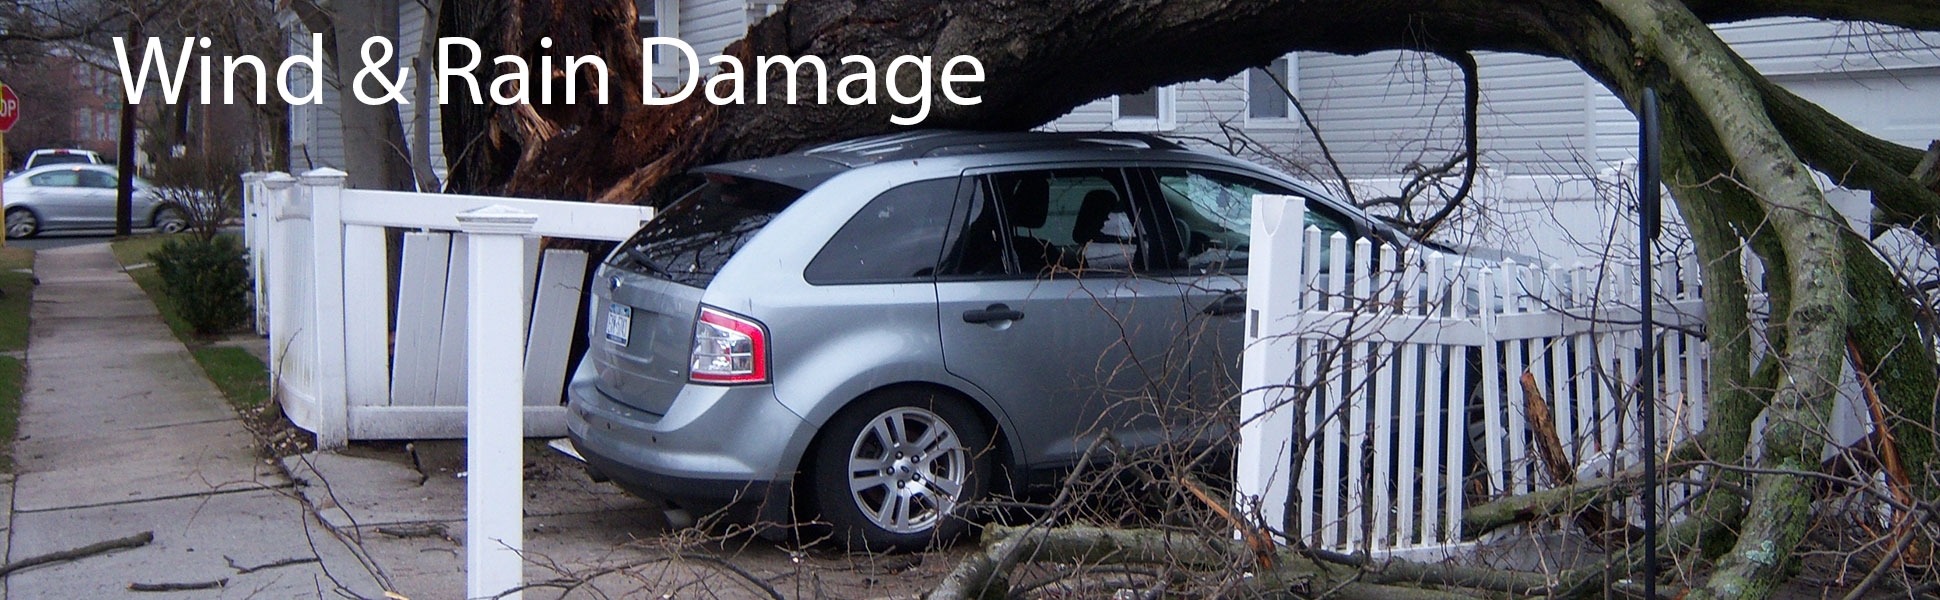 APLC-Wind-Rain-Damage-claims-Wehandleinsuranceclaims.com